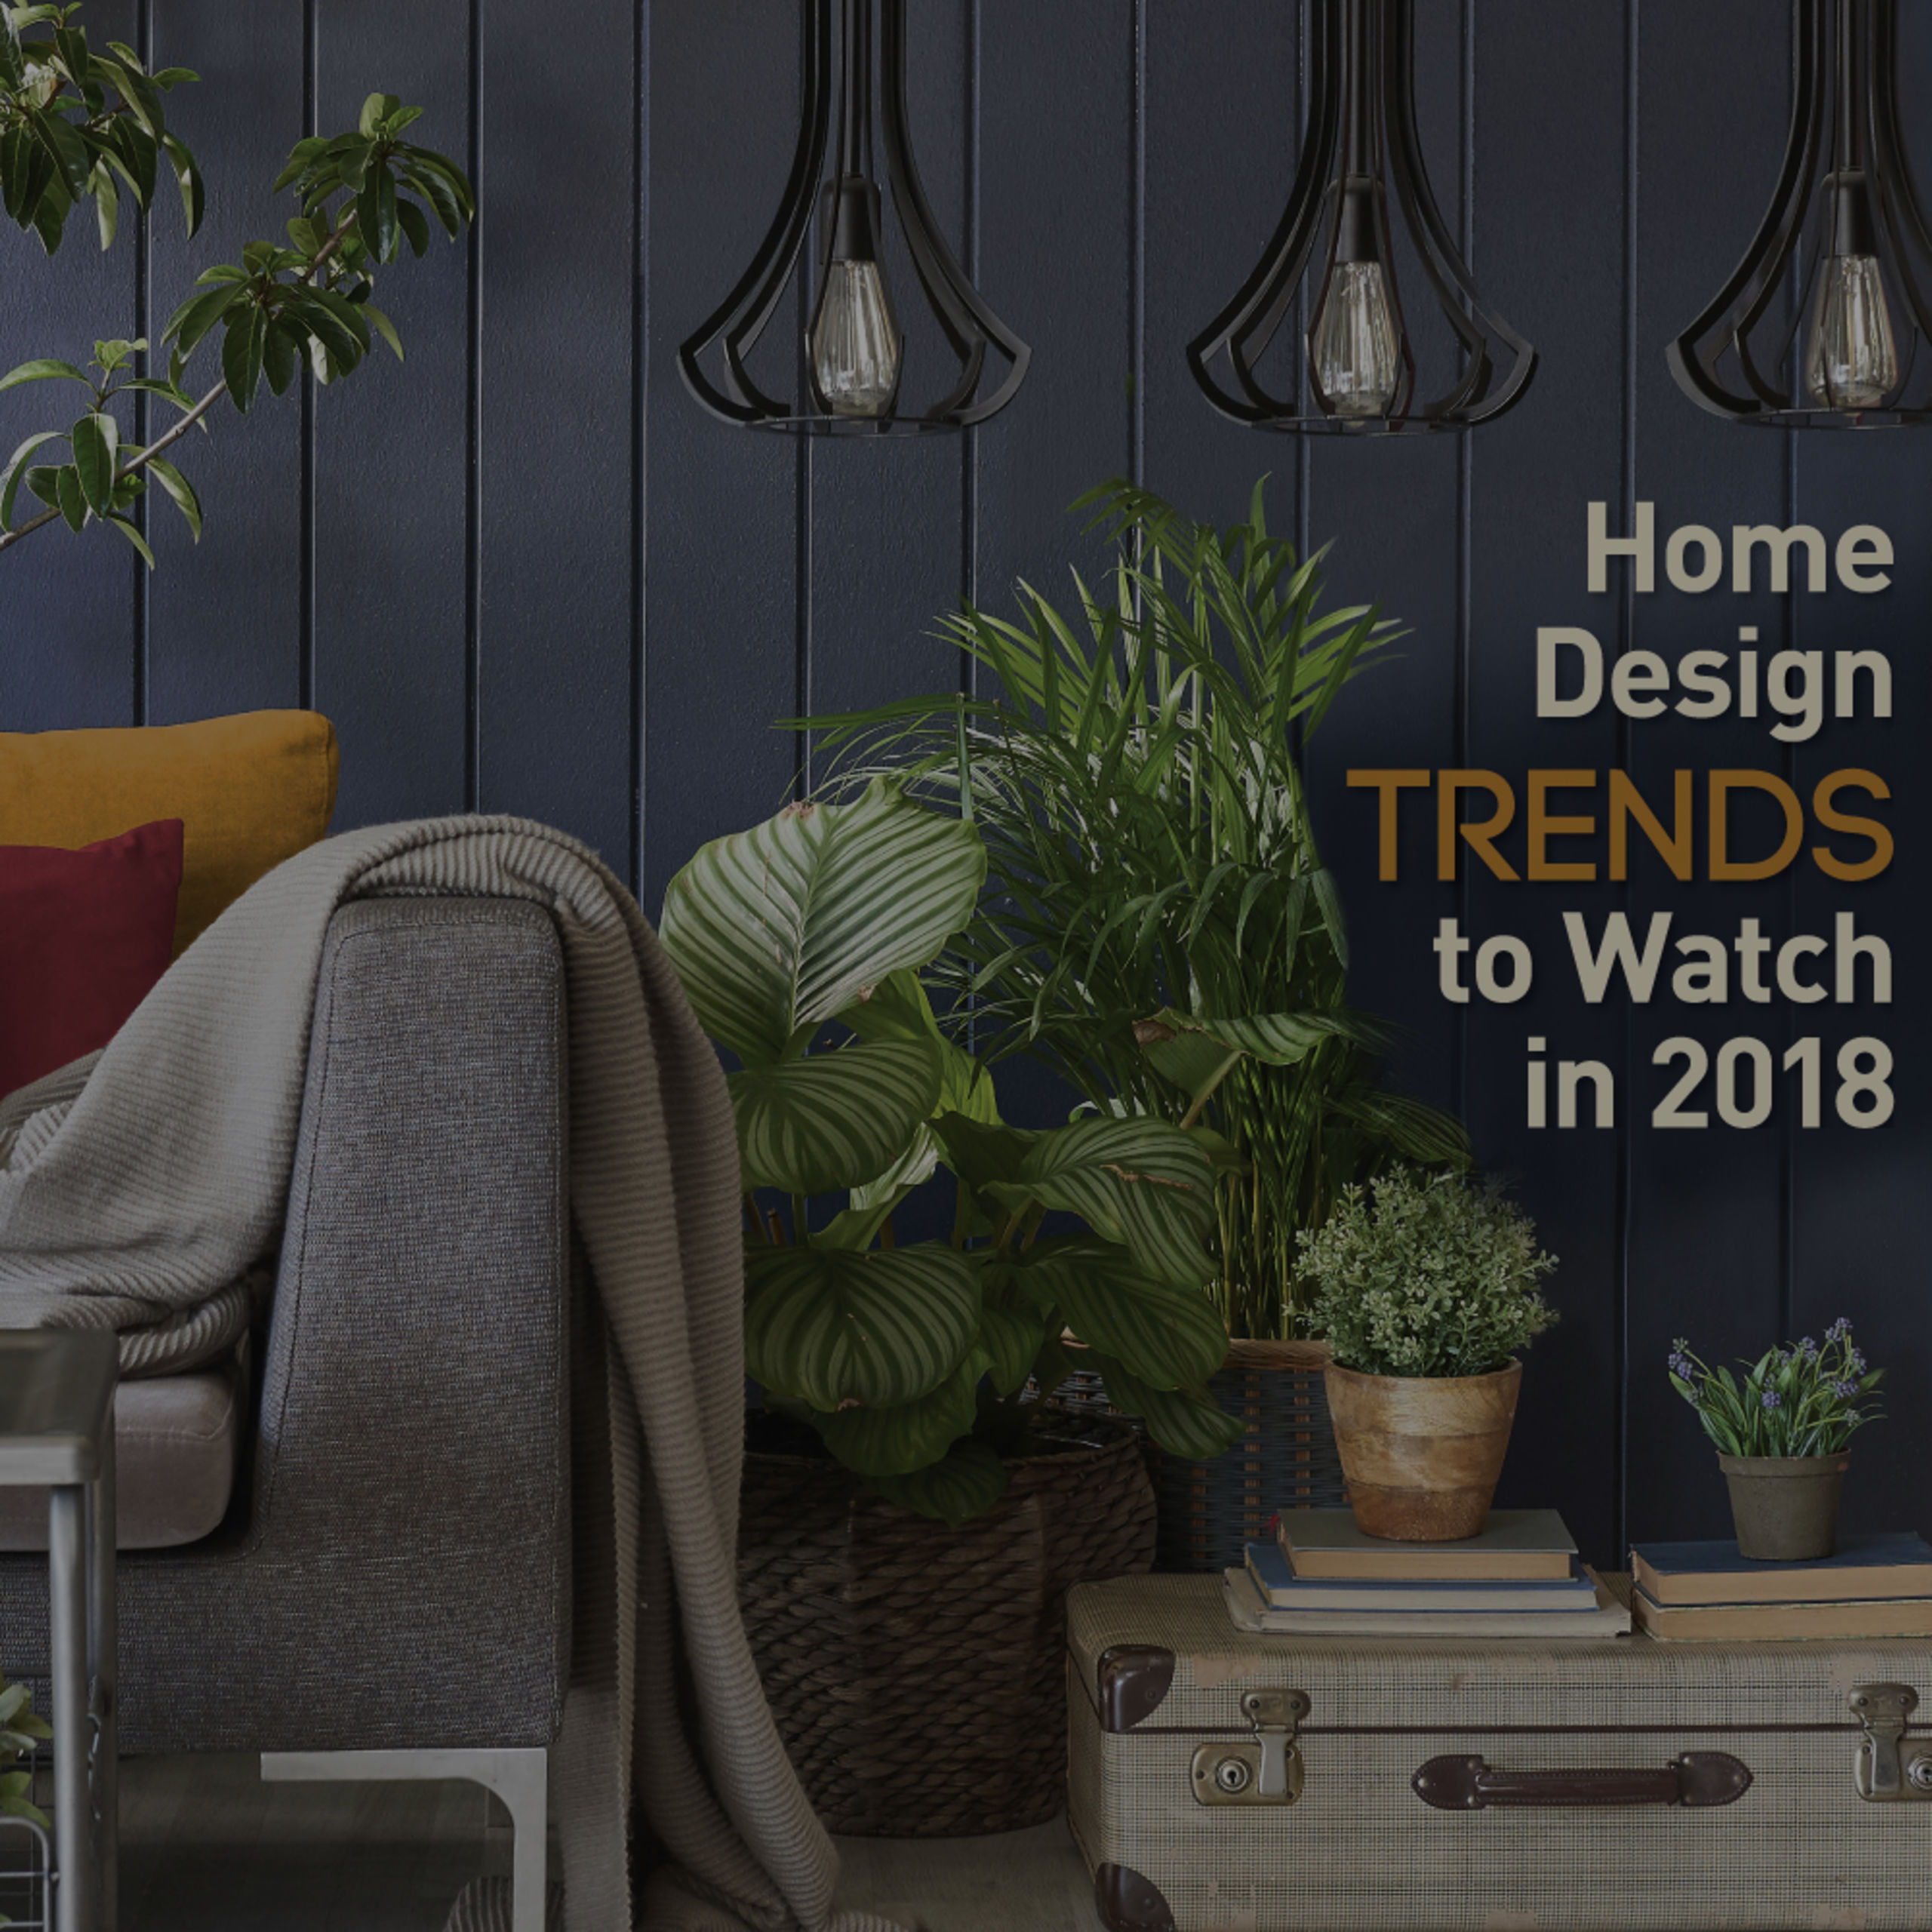 Hudson Valley Home Design Trends to Watch in 2018